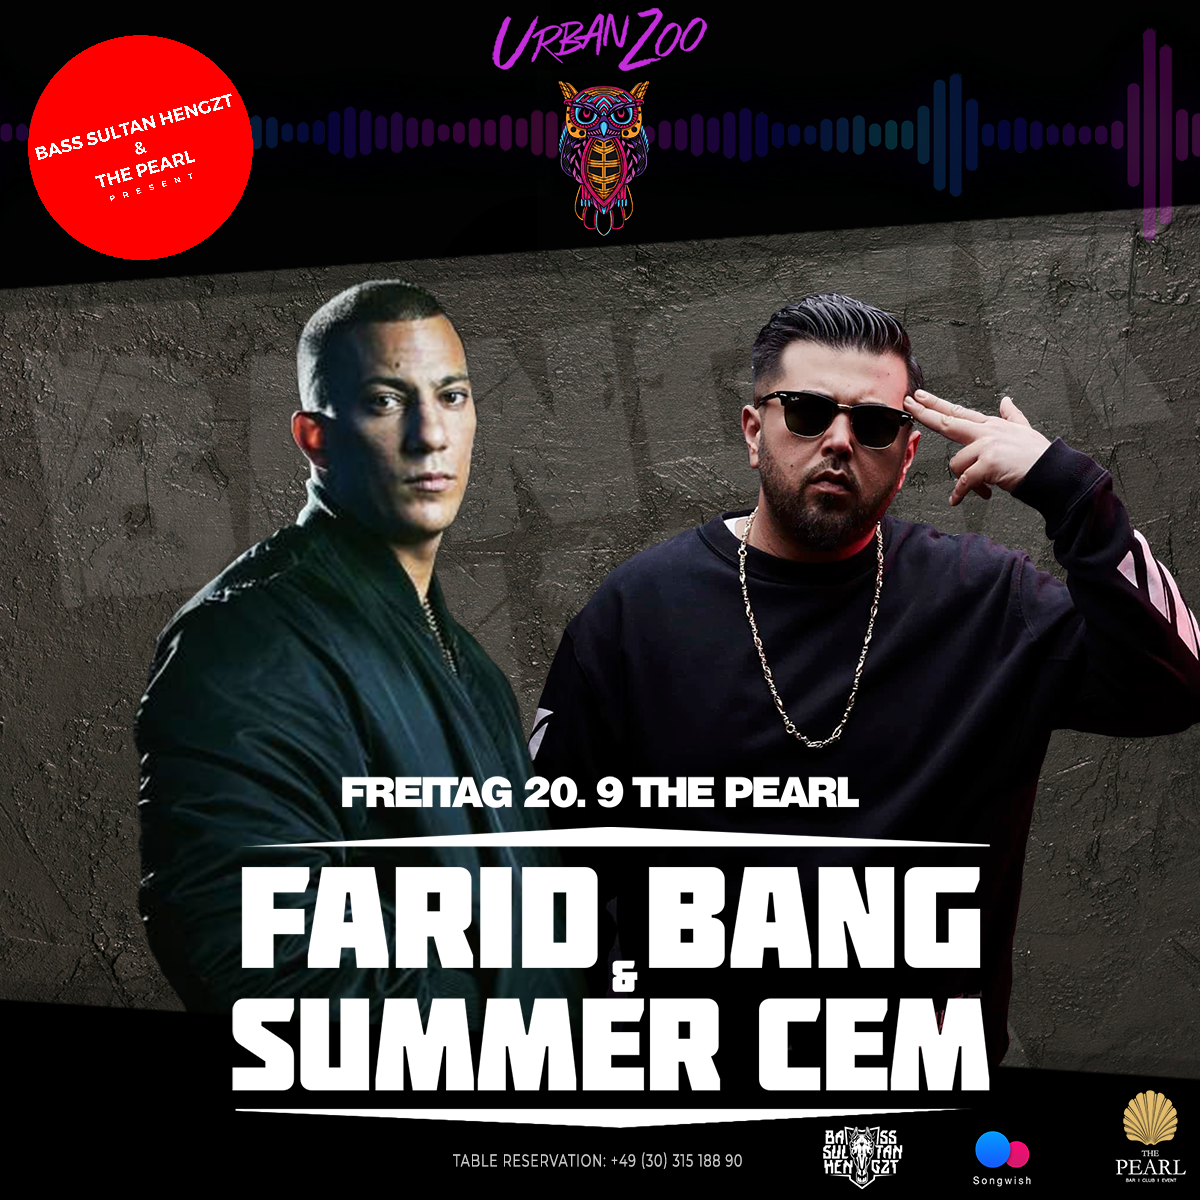 Summer Cem Farid Bang